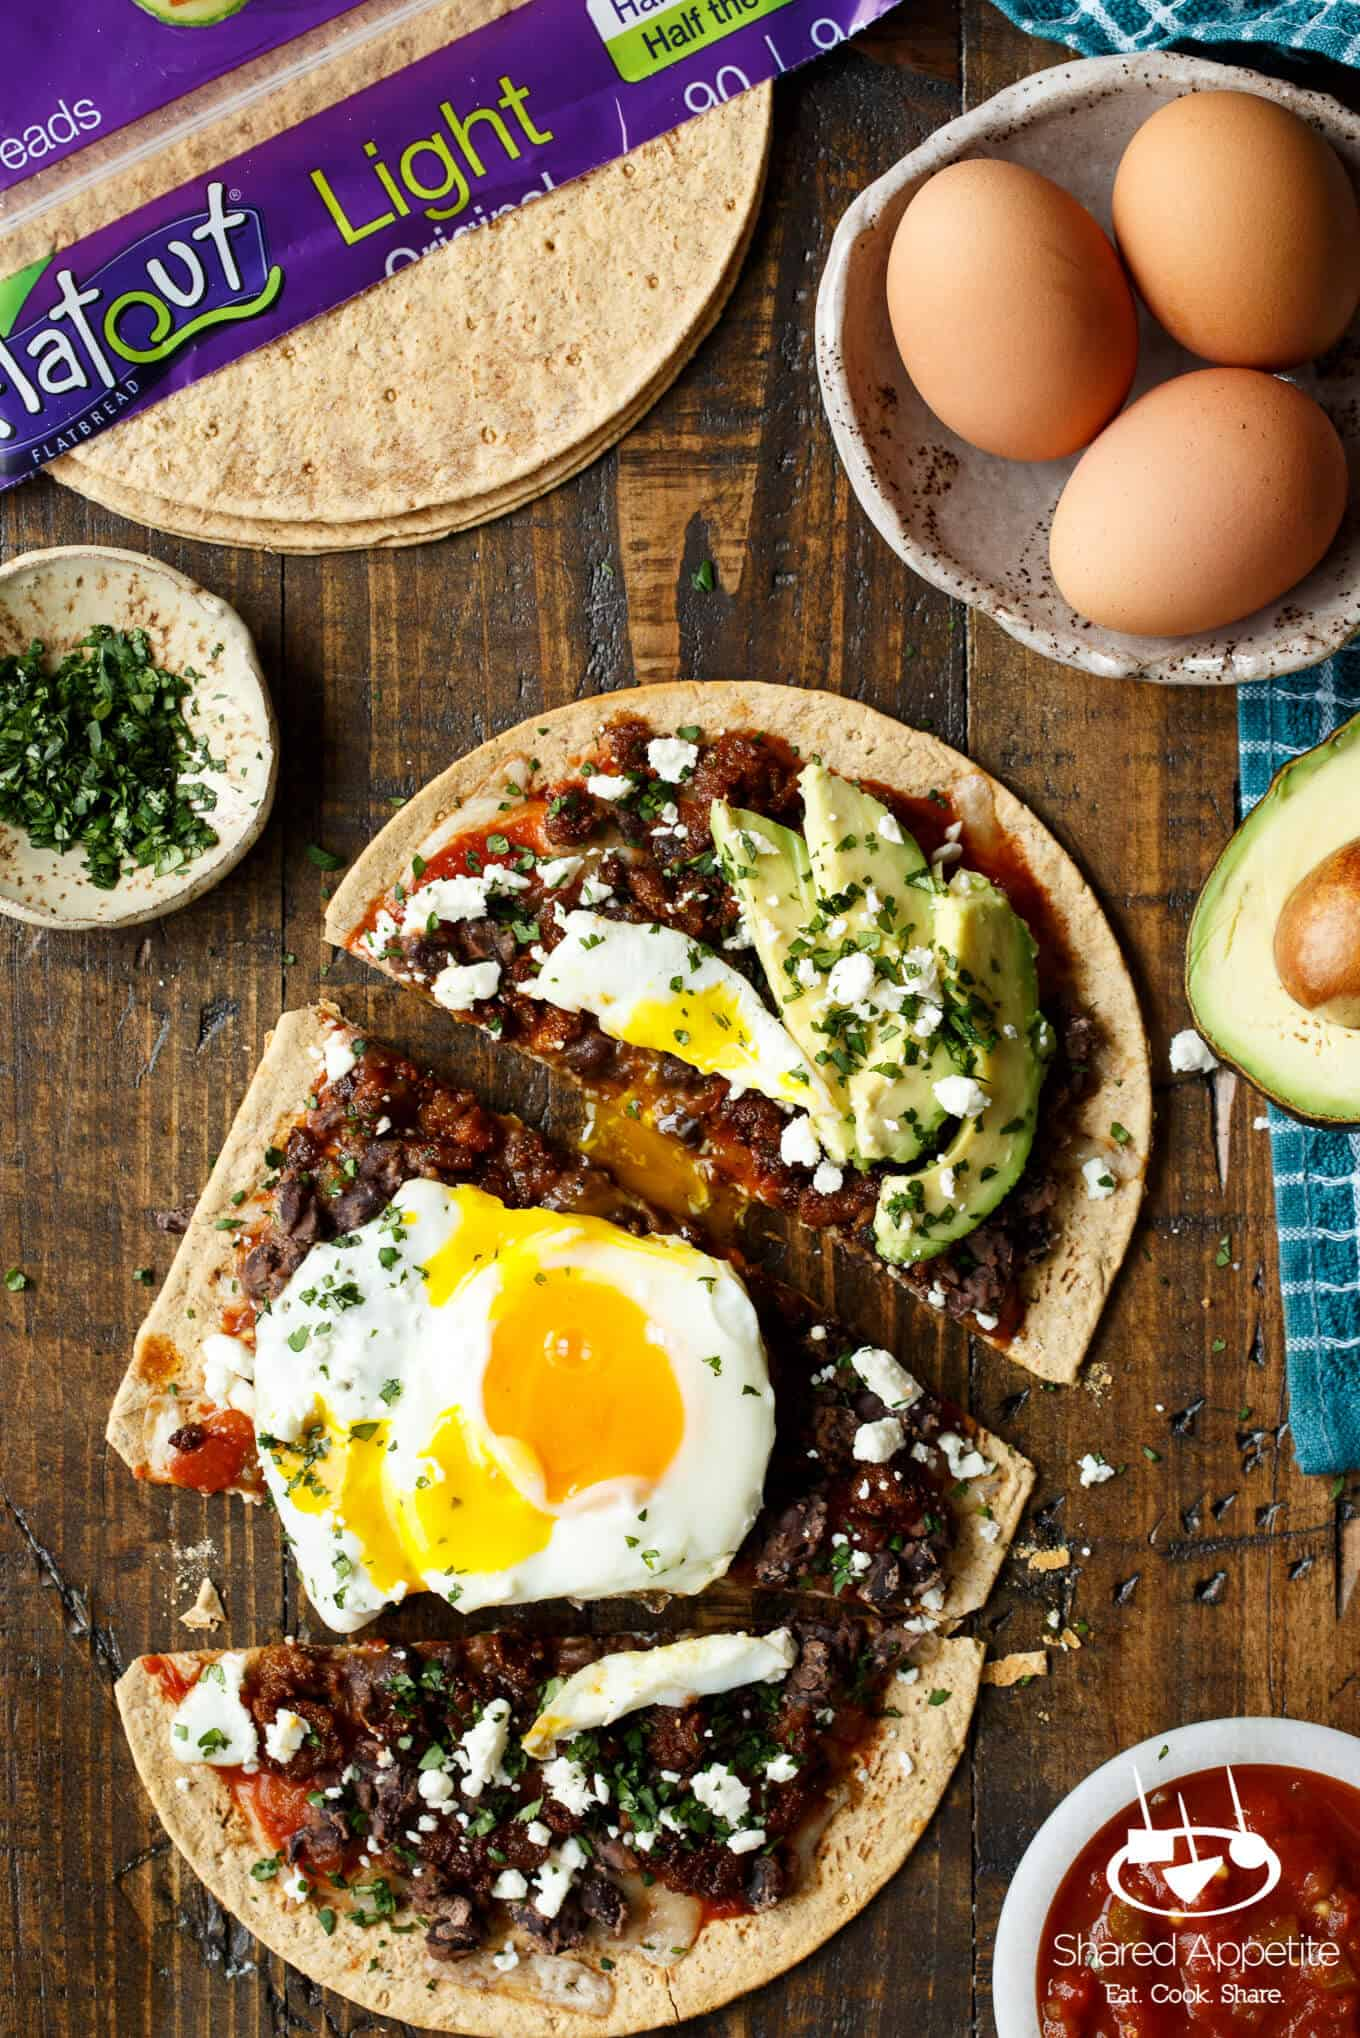 Huevos Rancheros Flatbread Pizza with Monterey Jack Cheese, Salsa, Black Beans, Avocado, and a Fried Egg! sharedappetite.com